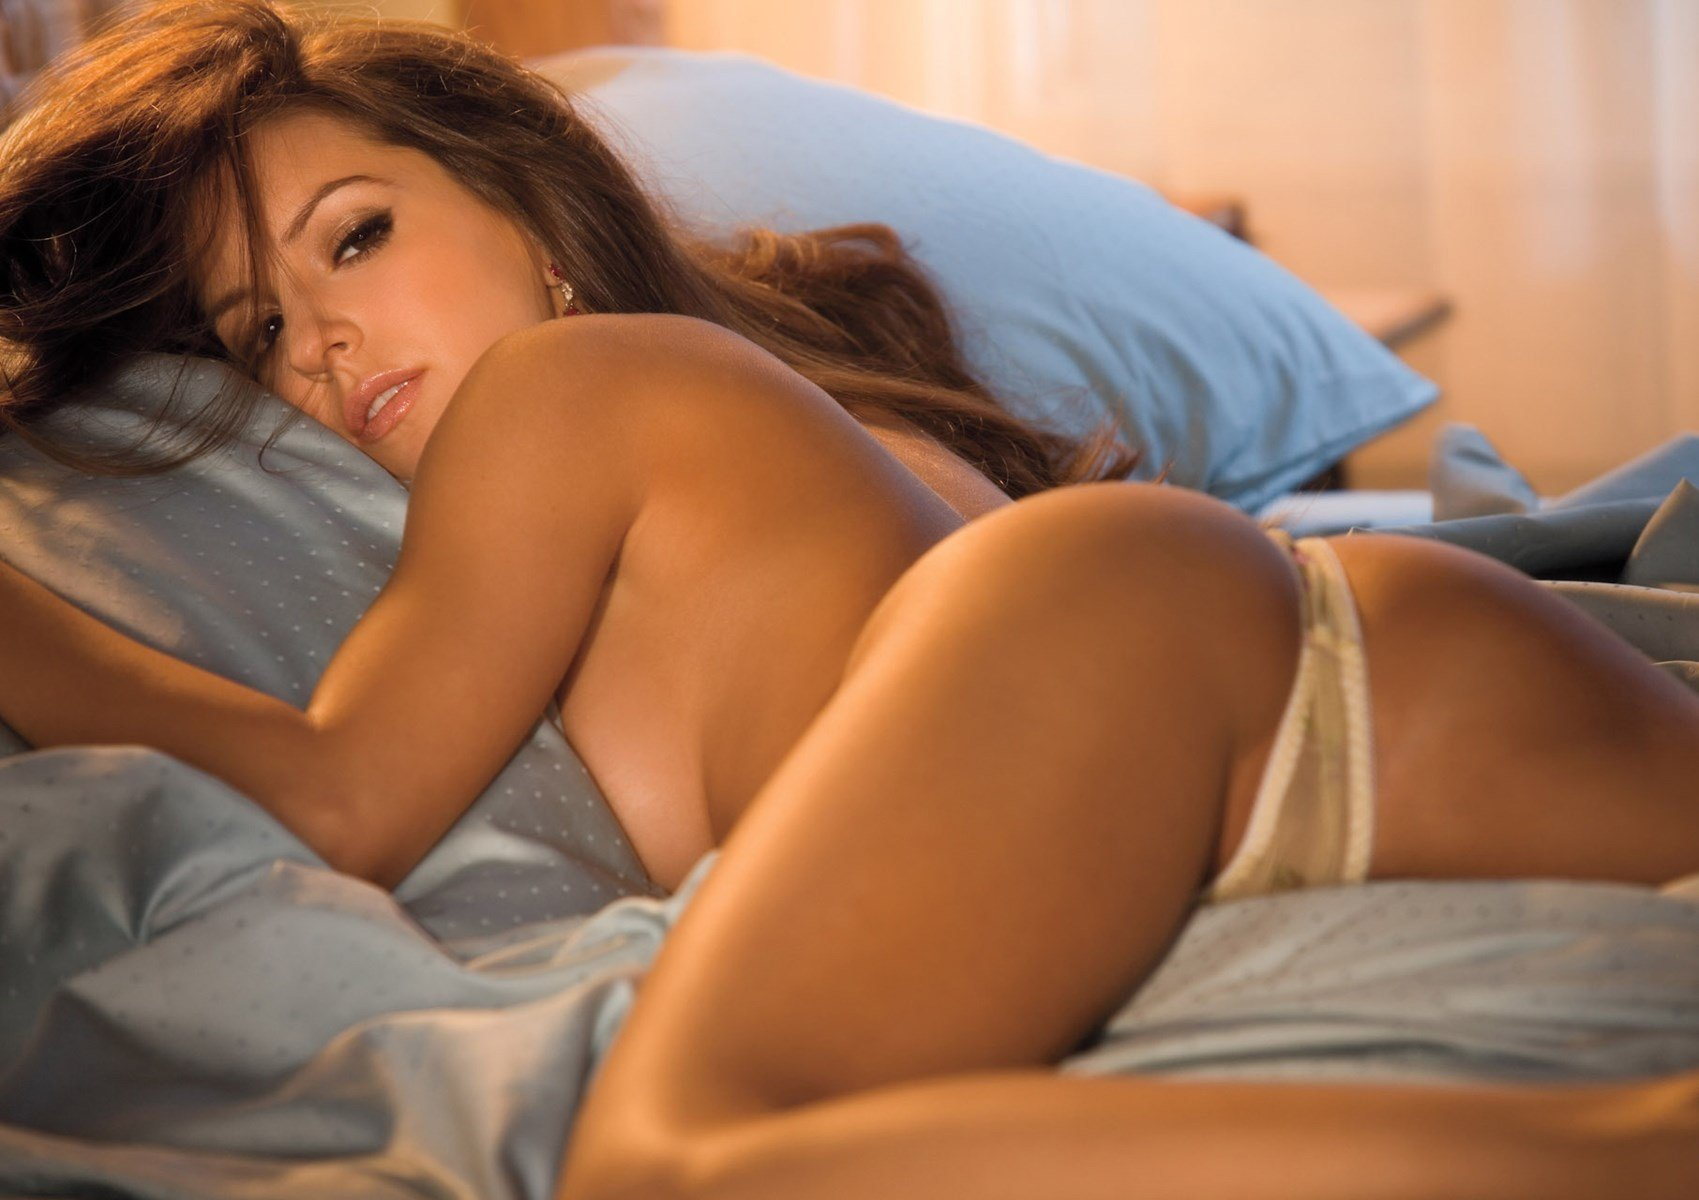 shelby-chesnes, nude-celebs